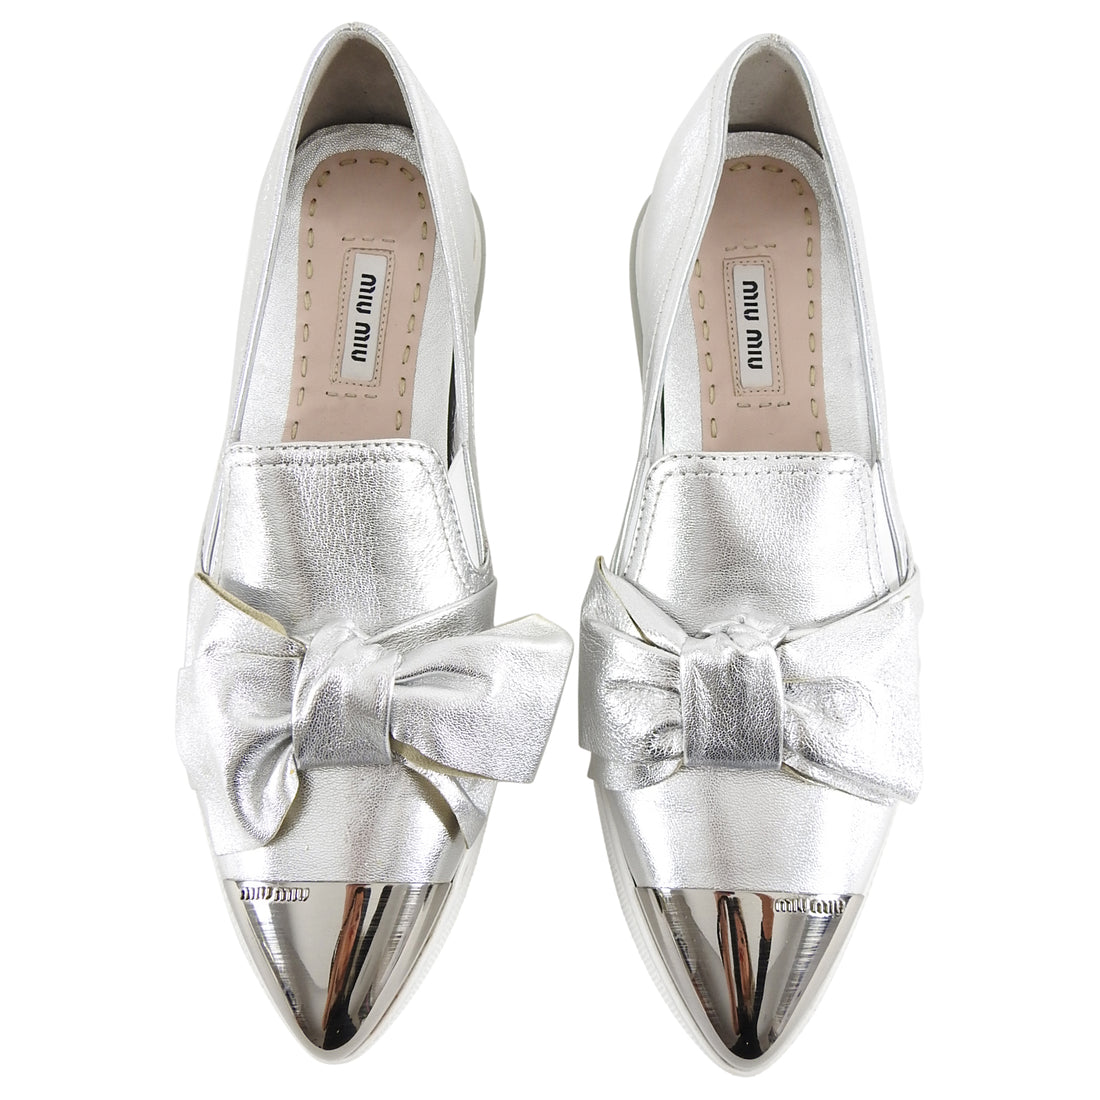 Miu Miu Silver Metallic Pointy Toe Flat Slip on Shoes - 38.5